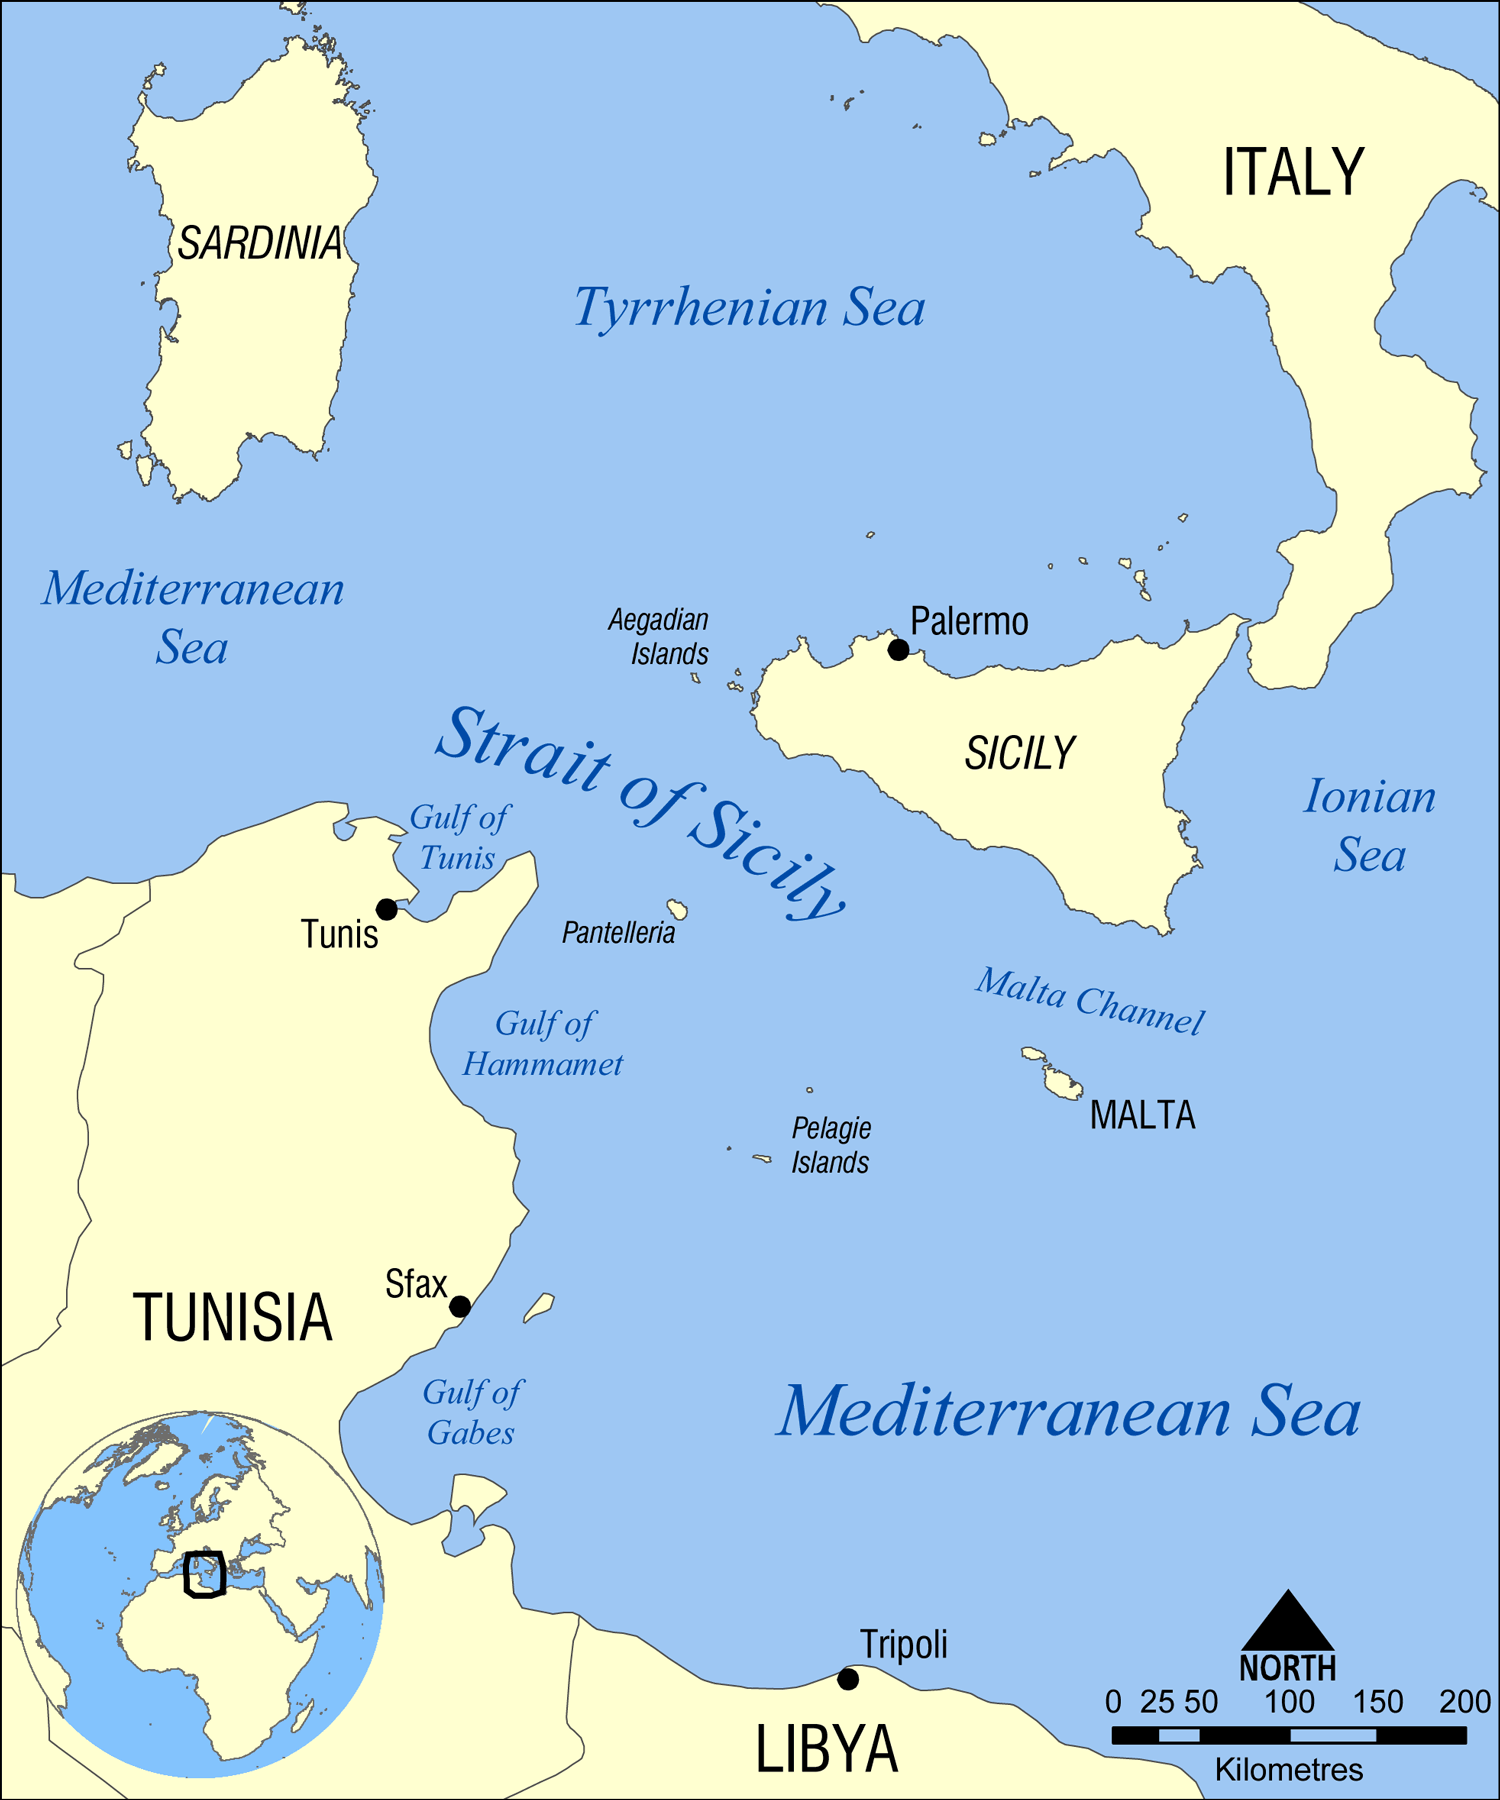 File:Strait of Sicily map.png - Wikimedia Commons